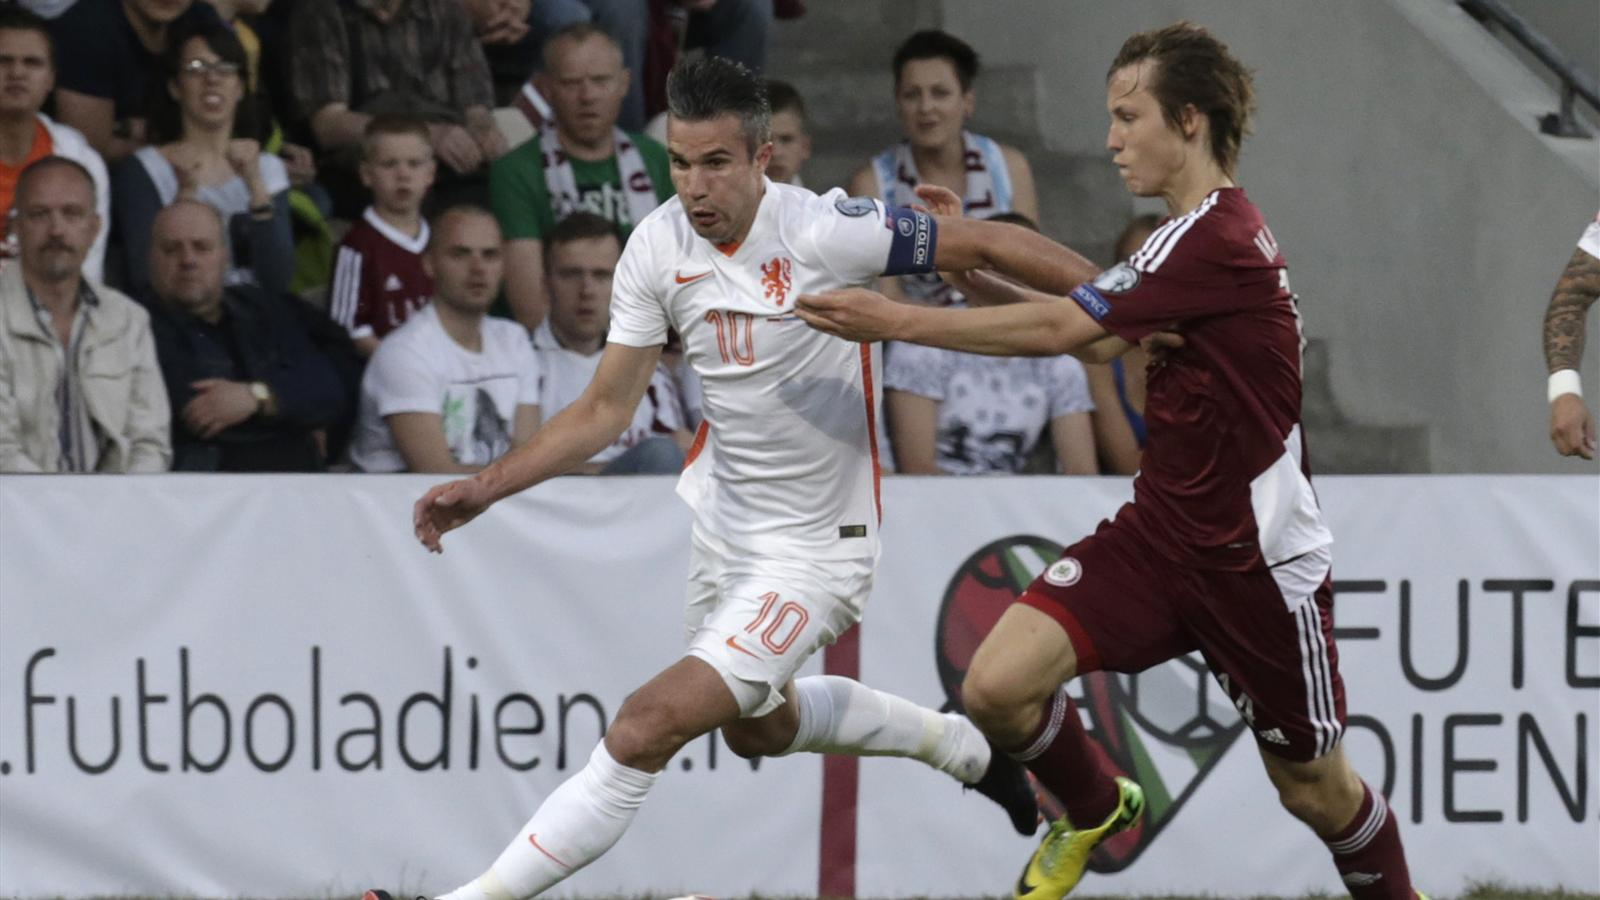 Netherlands' Van Persie fights for ball with Latvia's Ikaunieks